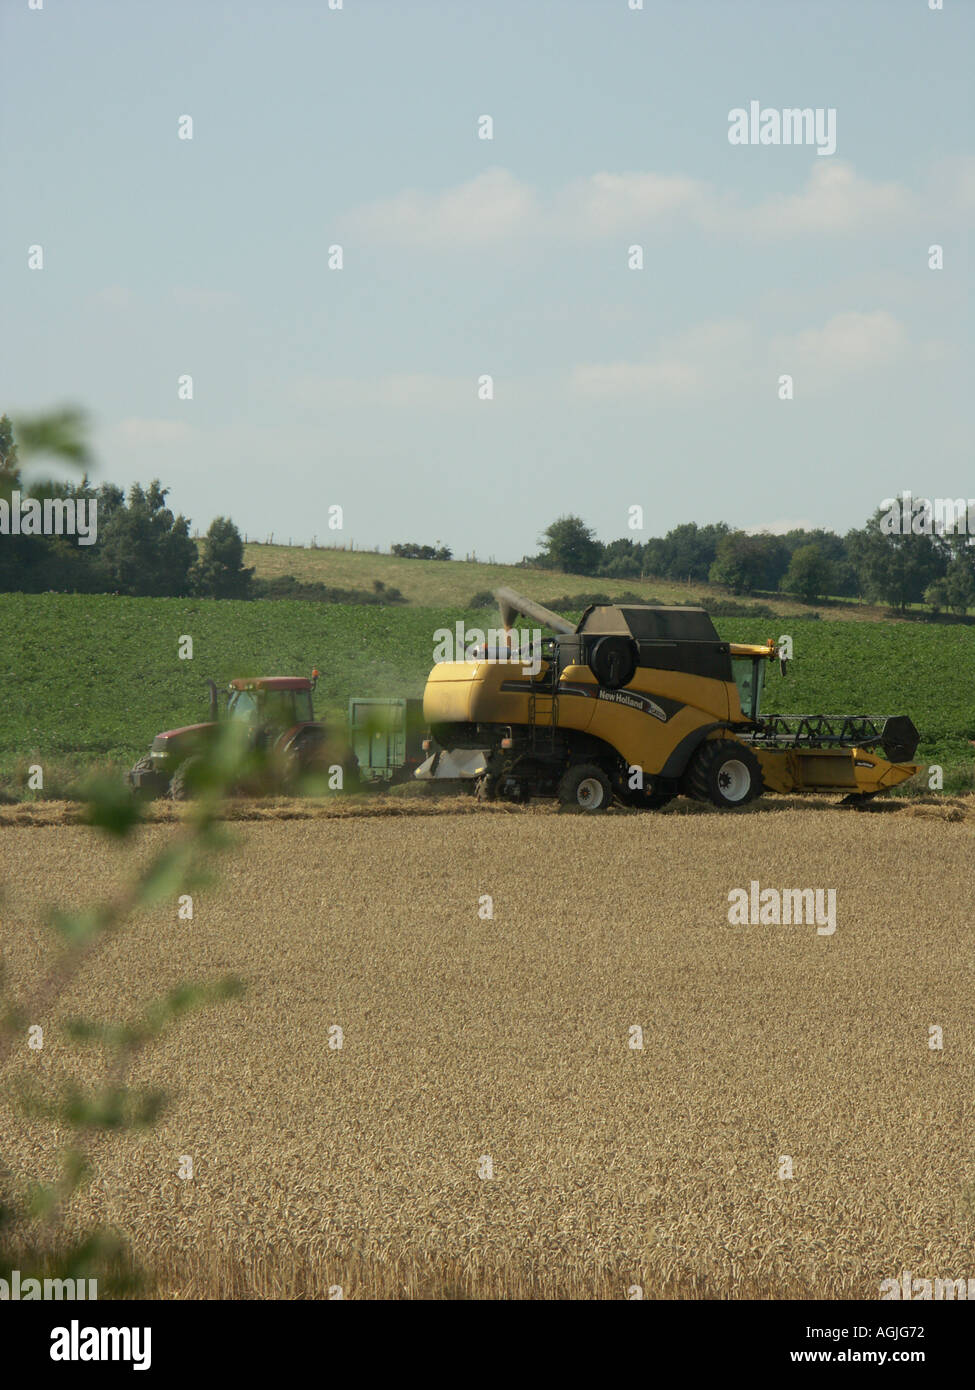 Summer harvesting in the UK with a combine harvester. - Stock Image